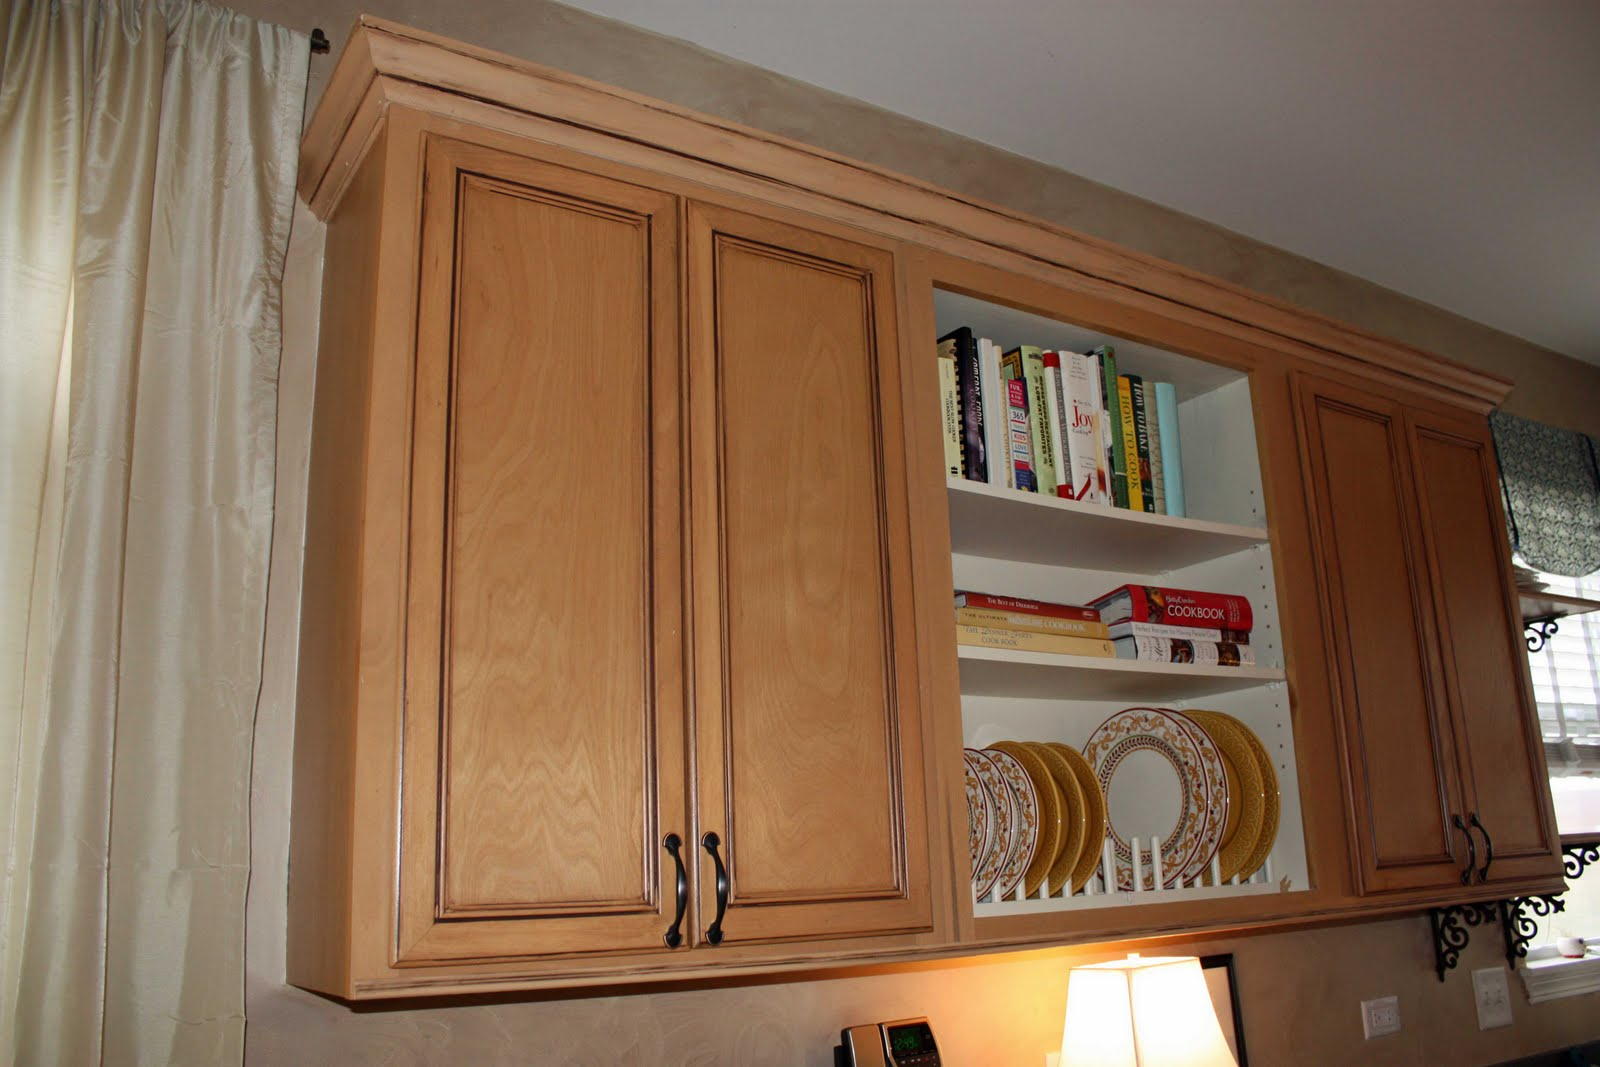 10 Unique Crown Molding Ideas For Kitchen putting crown molding on kitchen cabinets 2021